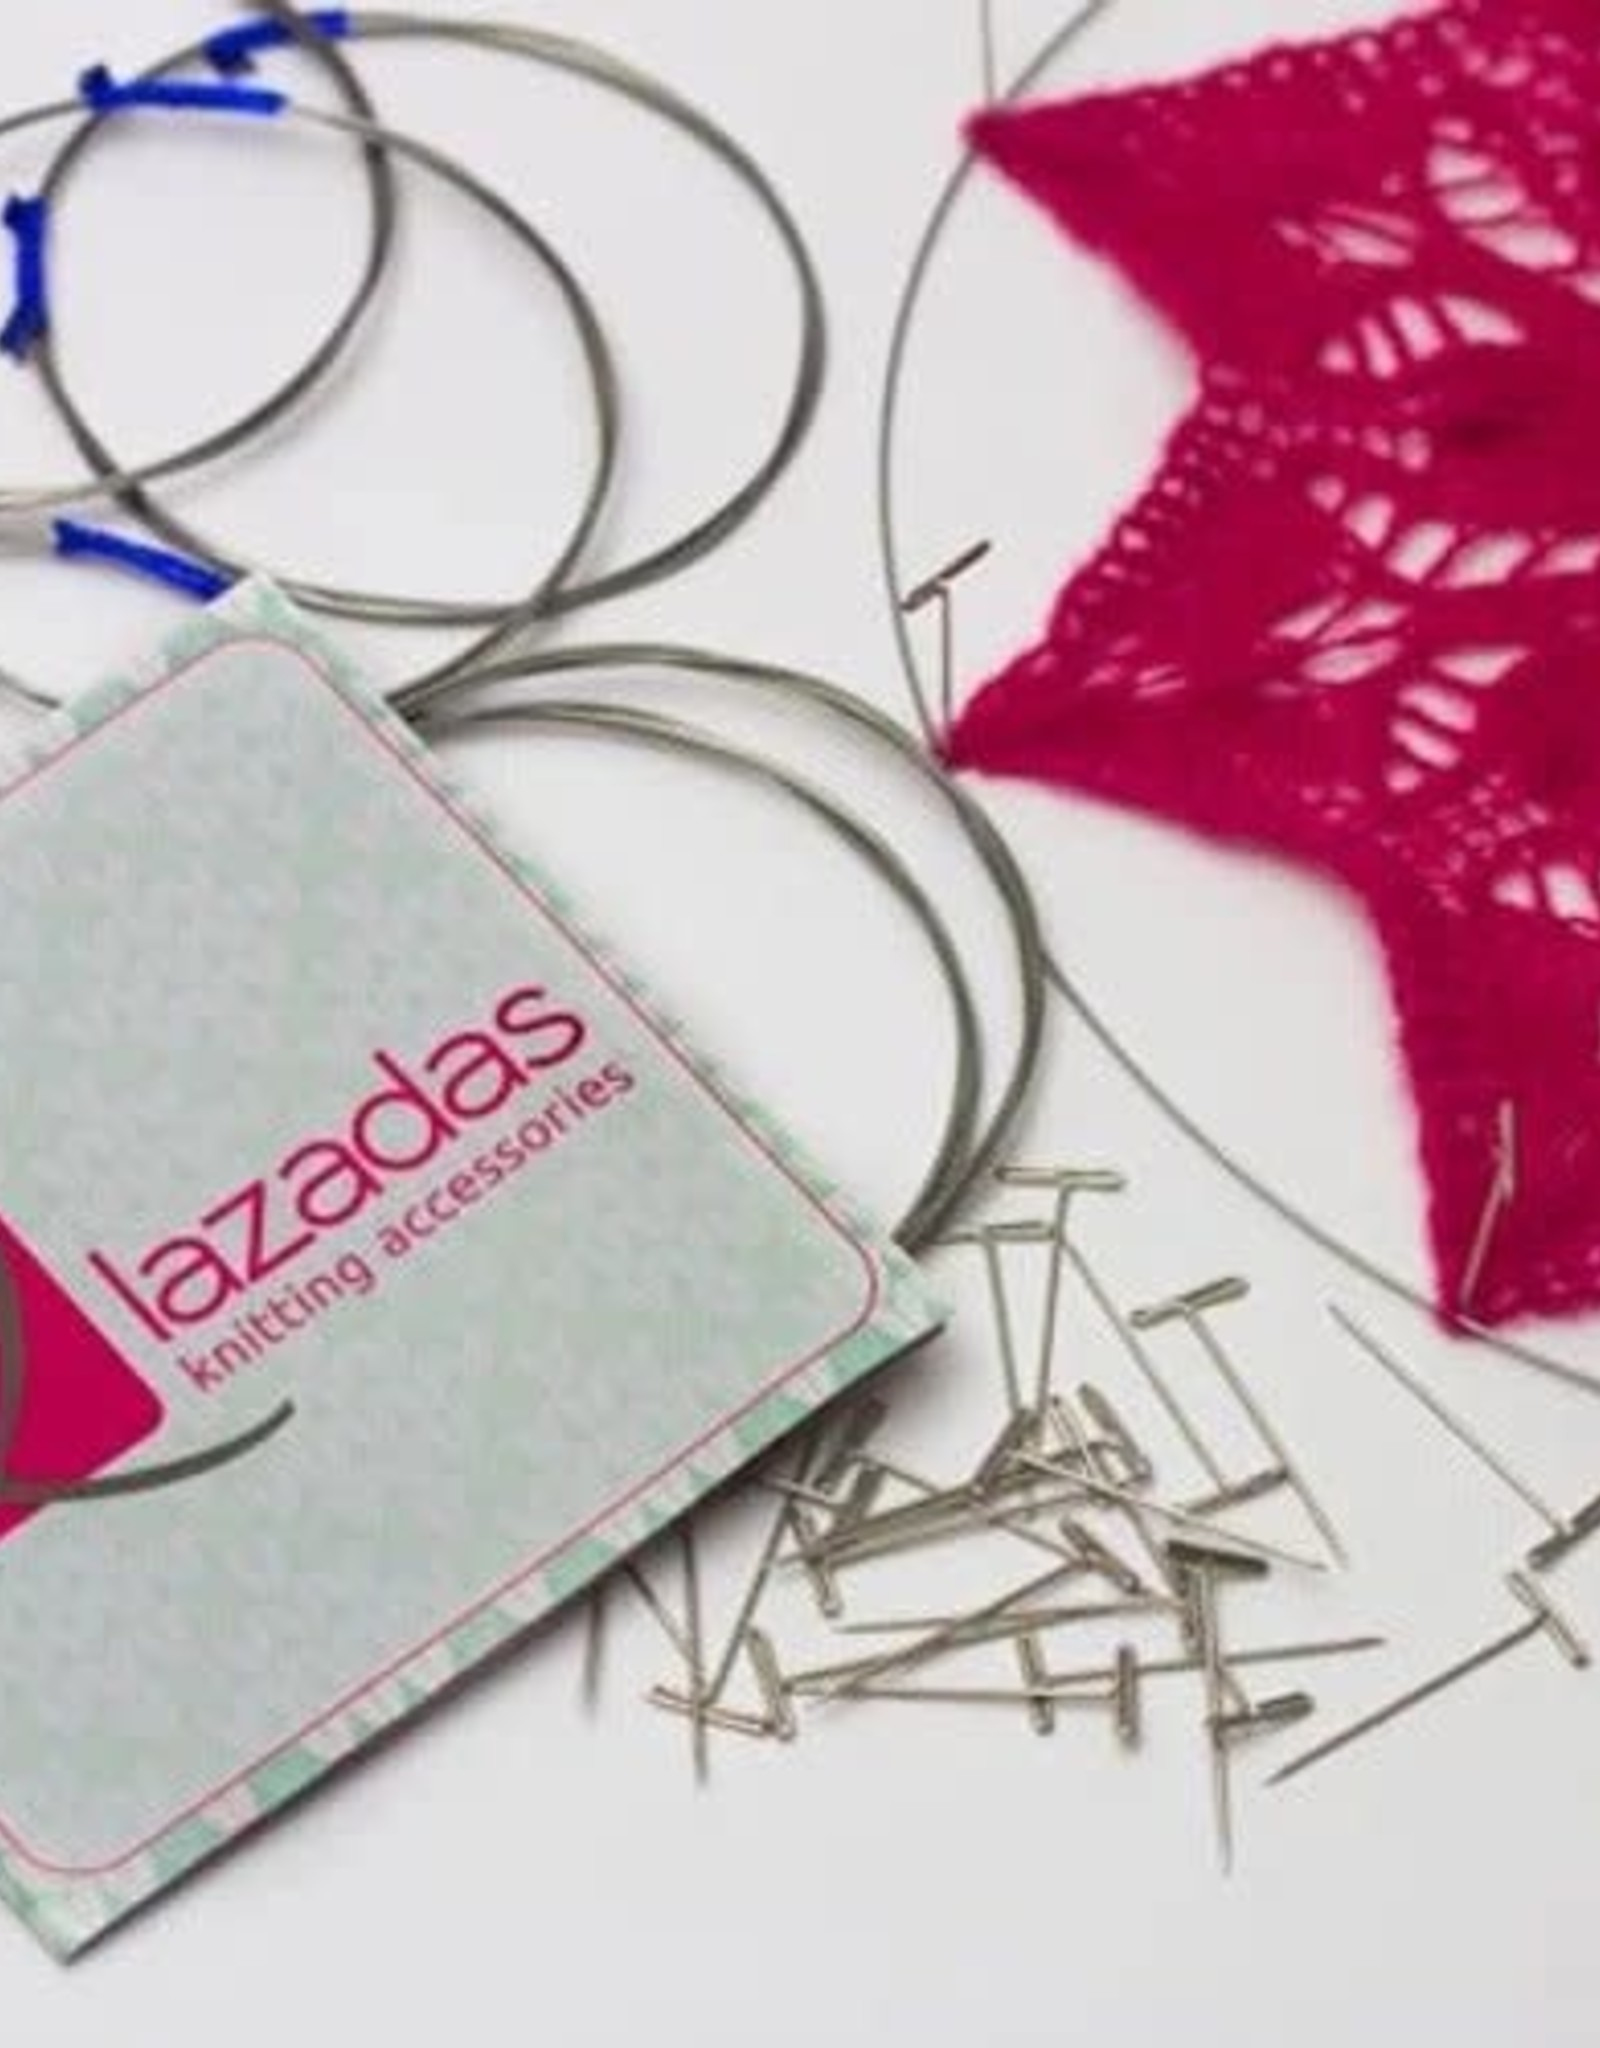 Lazadas Lazadas Blocking Wire Set - Deluxe